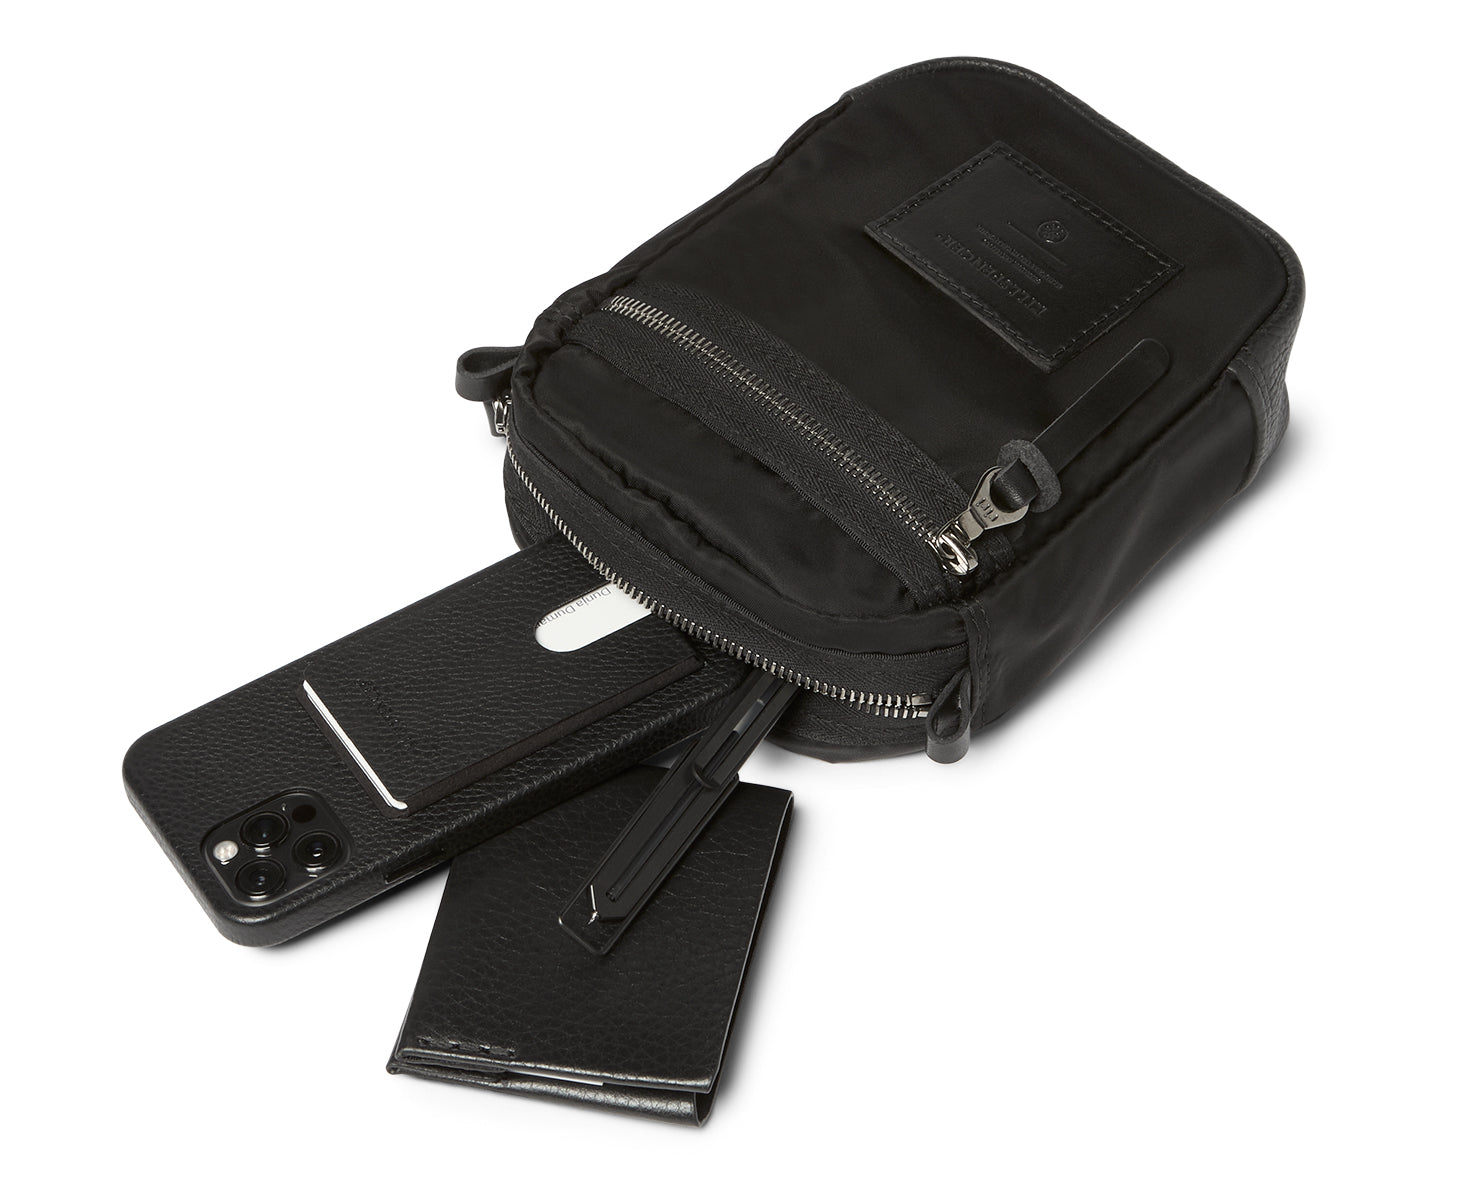 EDC BAG - SMALL | KILLSPENCER® - Black Italian Nylon and Leather